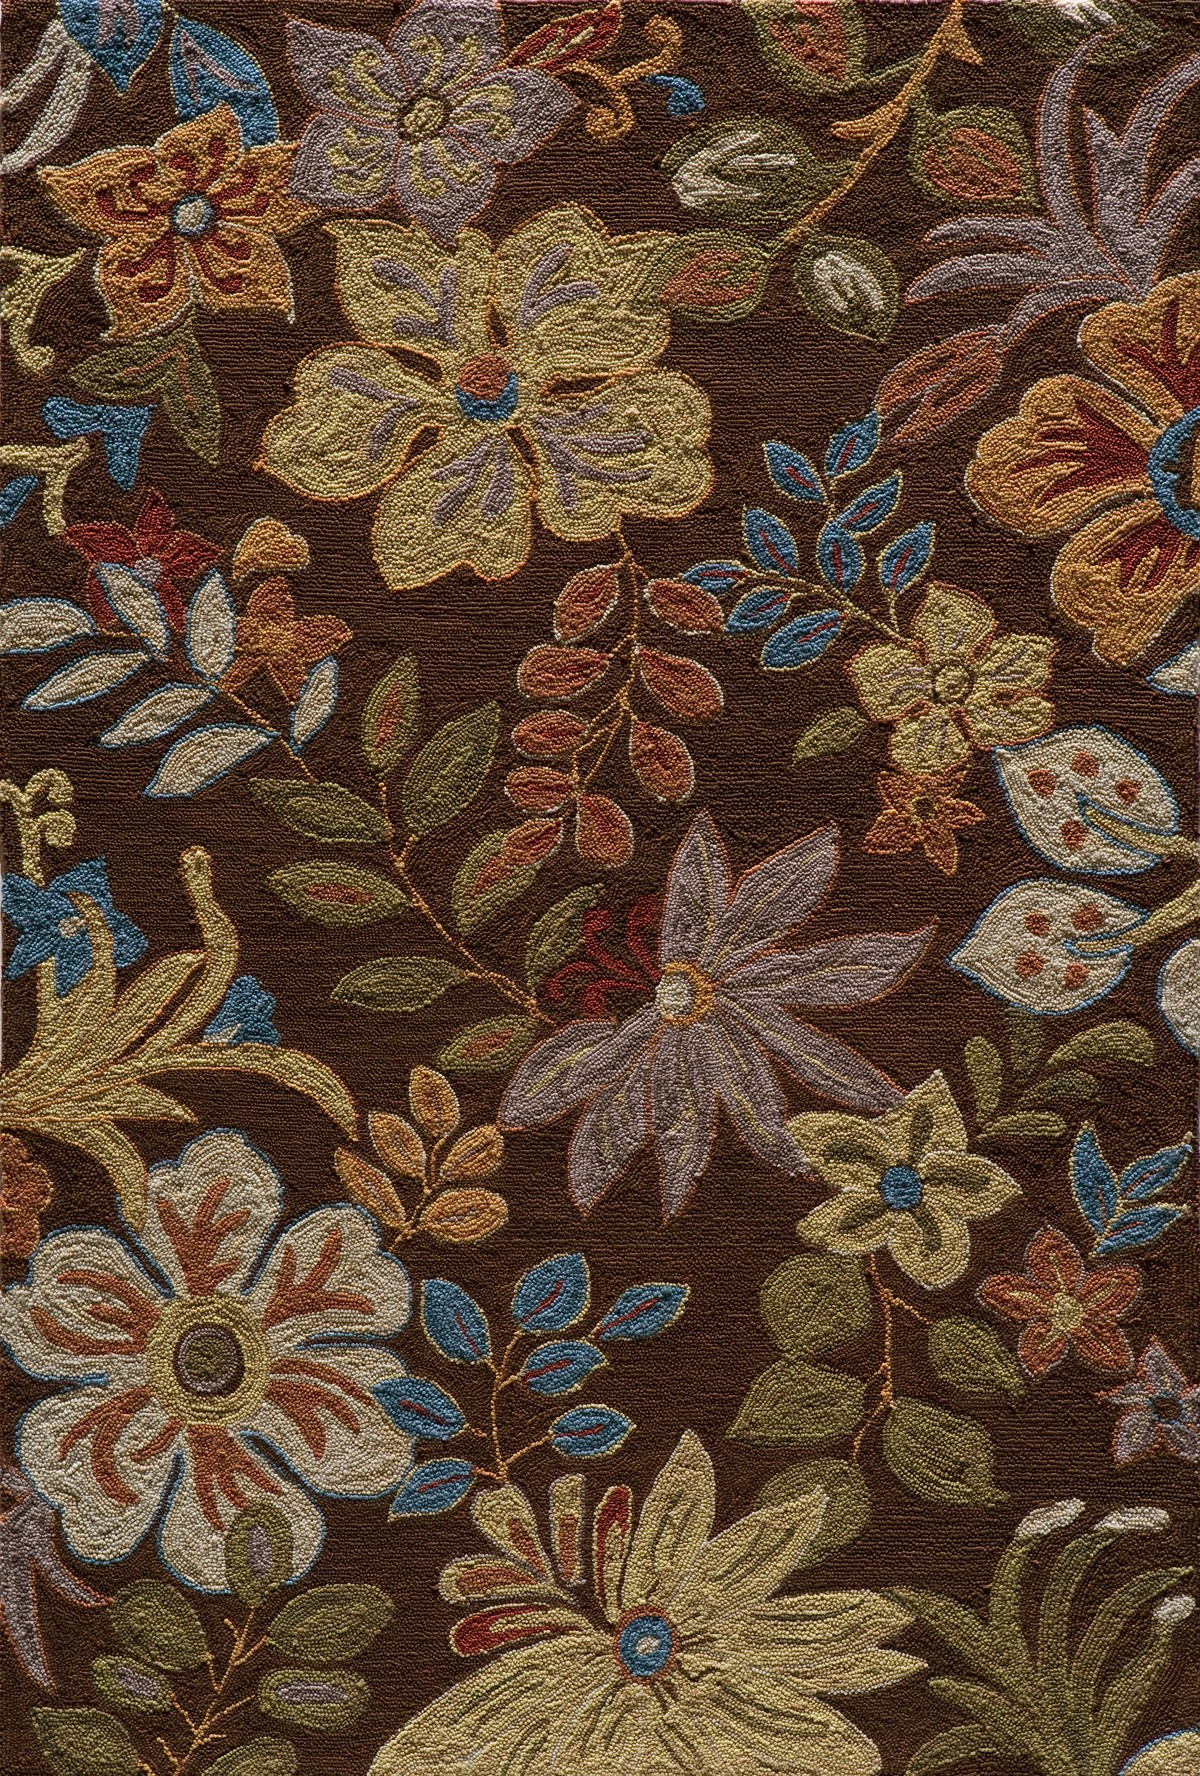 Have A Cool Floor With Momeni Rugs Ideas: Charming Brown Floral Momeni Rugs For Floor Decor Ideas